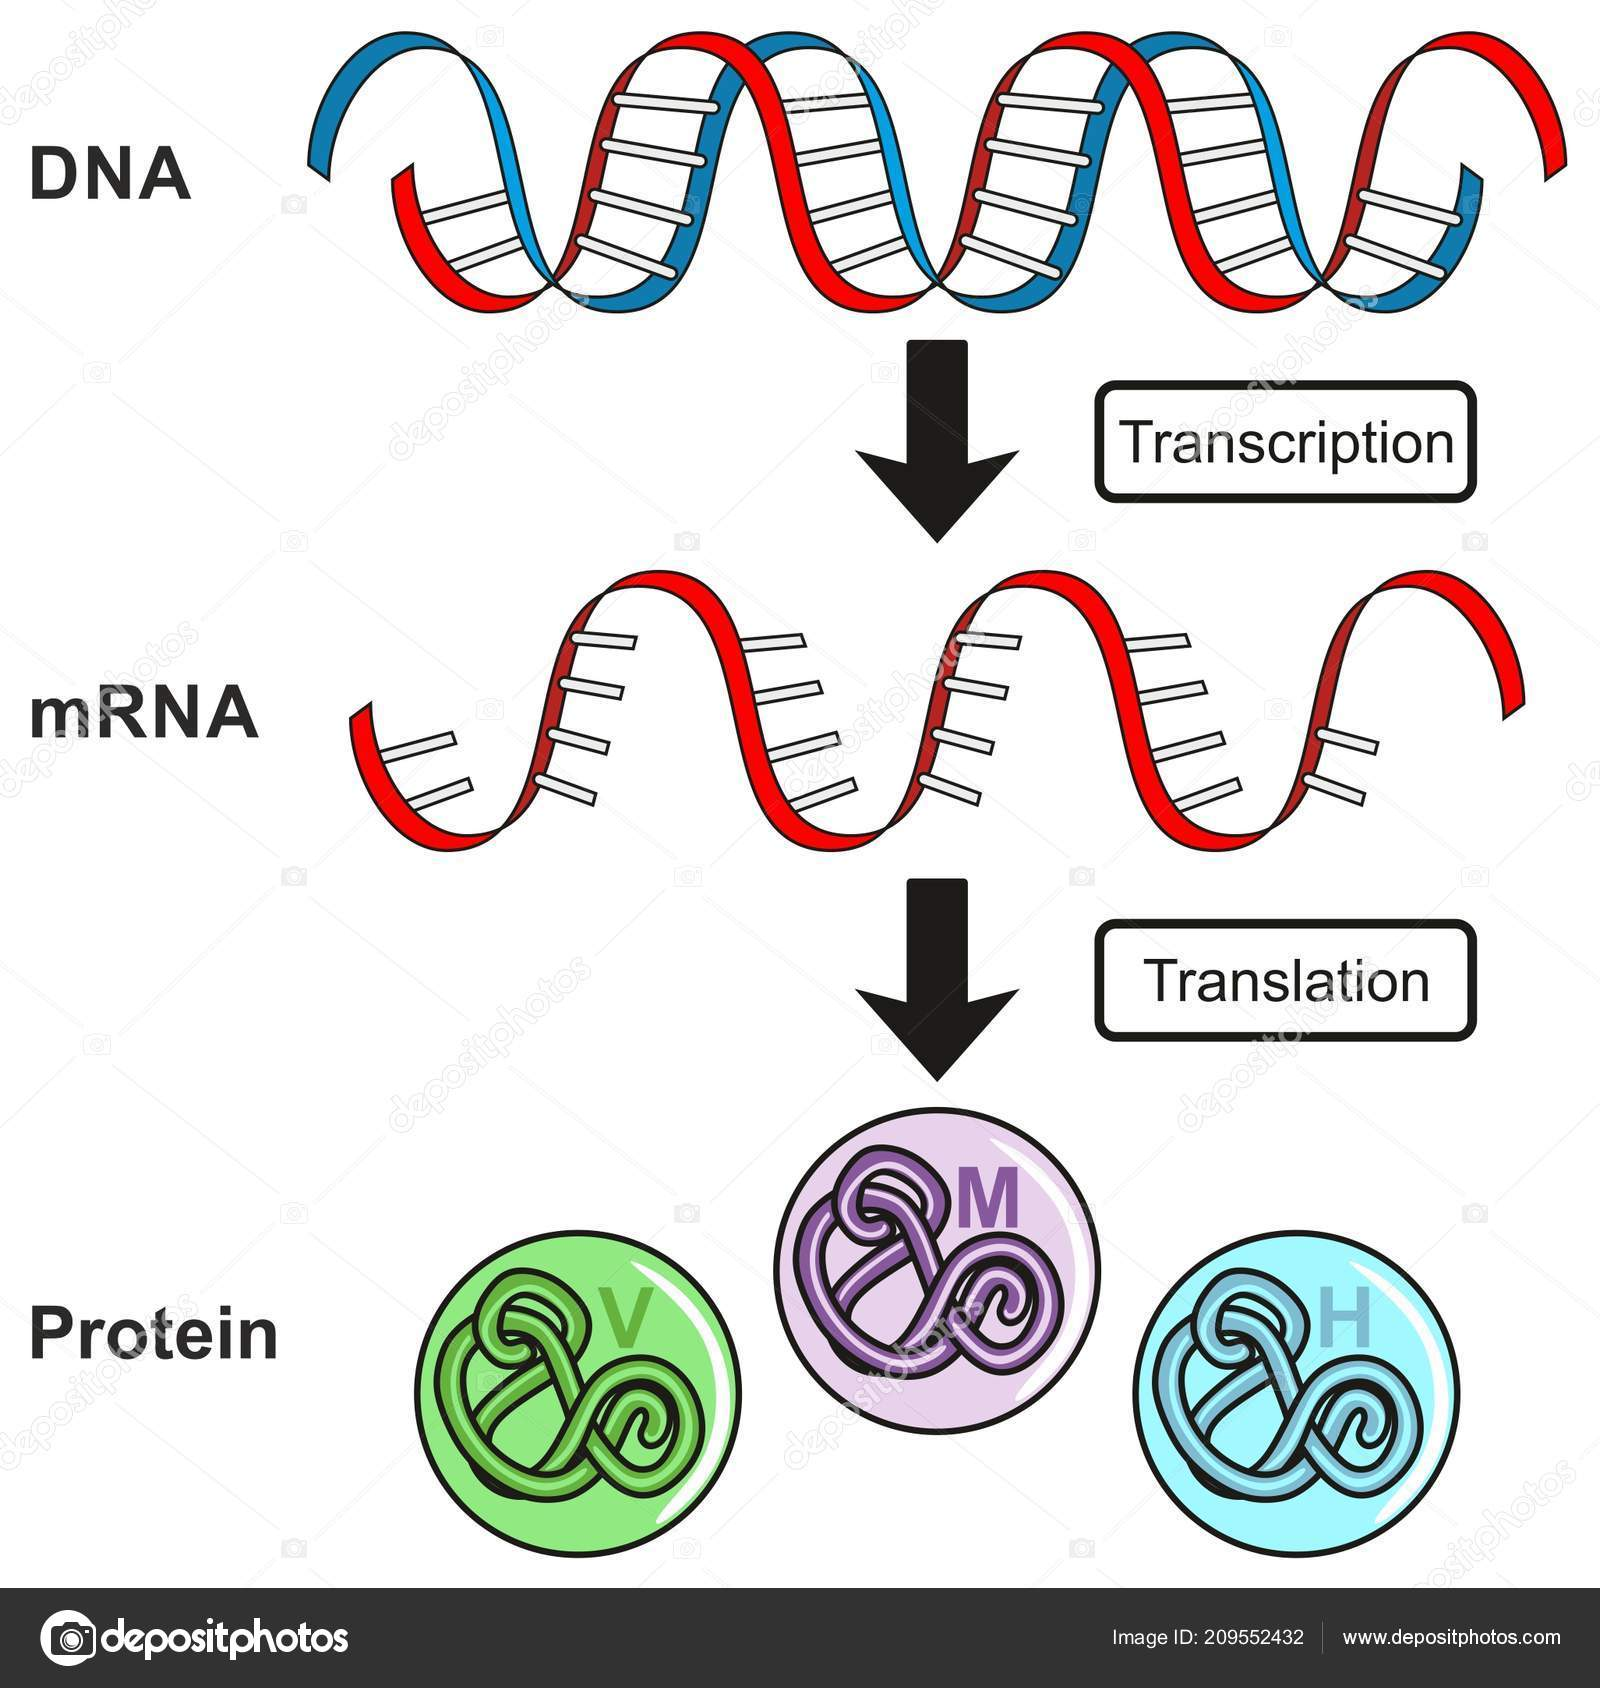 hight resolution of central dogma of gene expression infographic diagram showing the process of transcription and translation from dna to rna to protein and how it form for